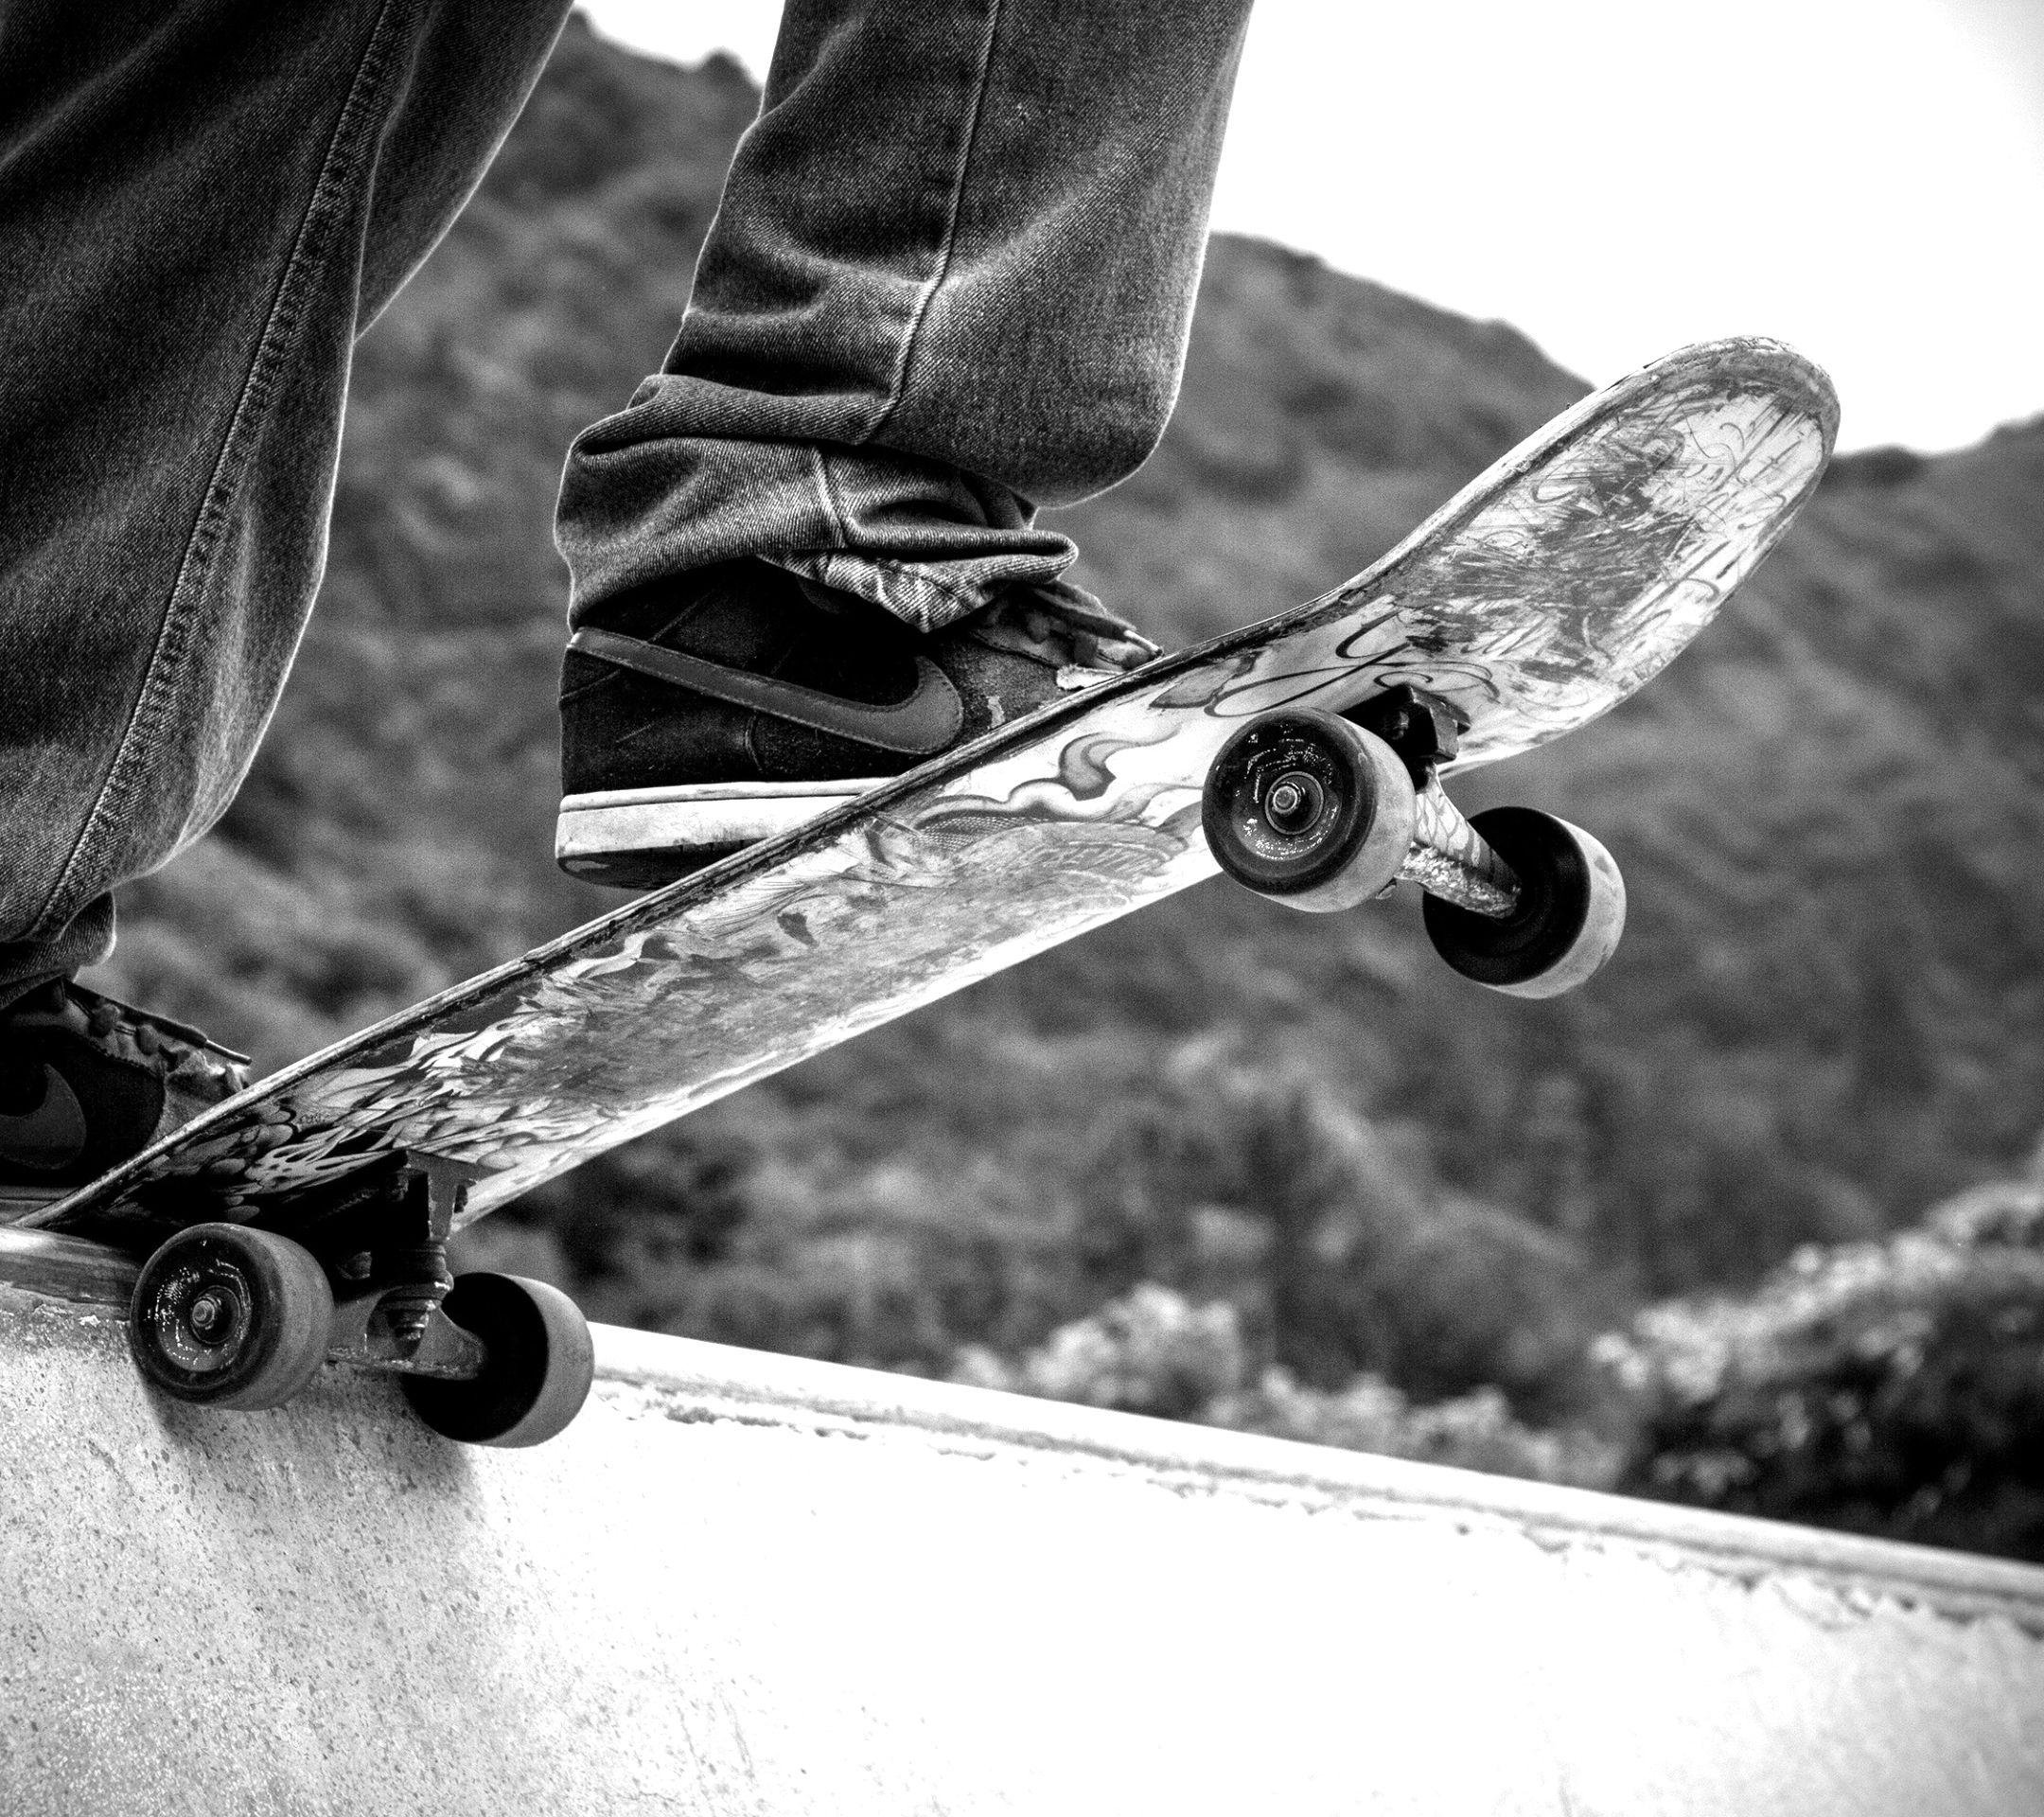 Stussy Hd Wallpaper Skateboard Wallpapers Black And White Wallpaper Cave